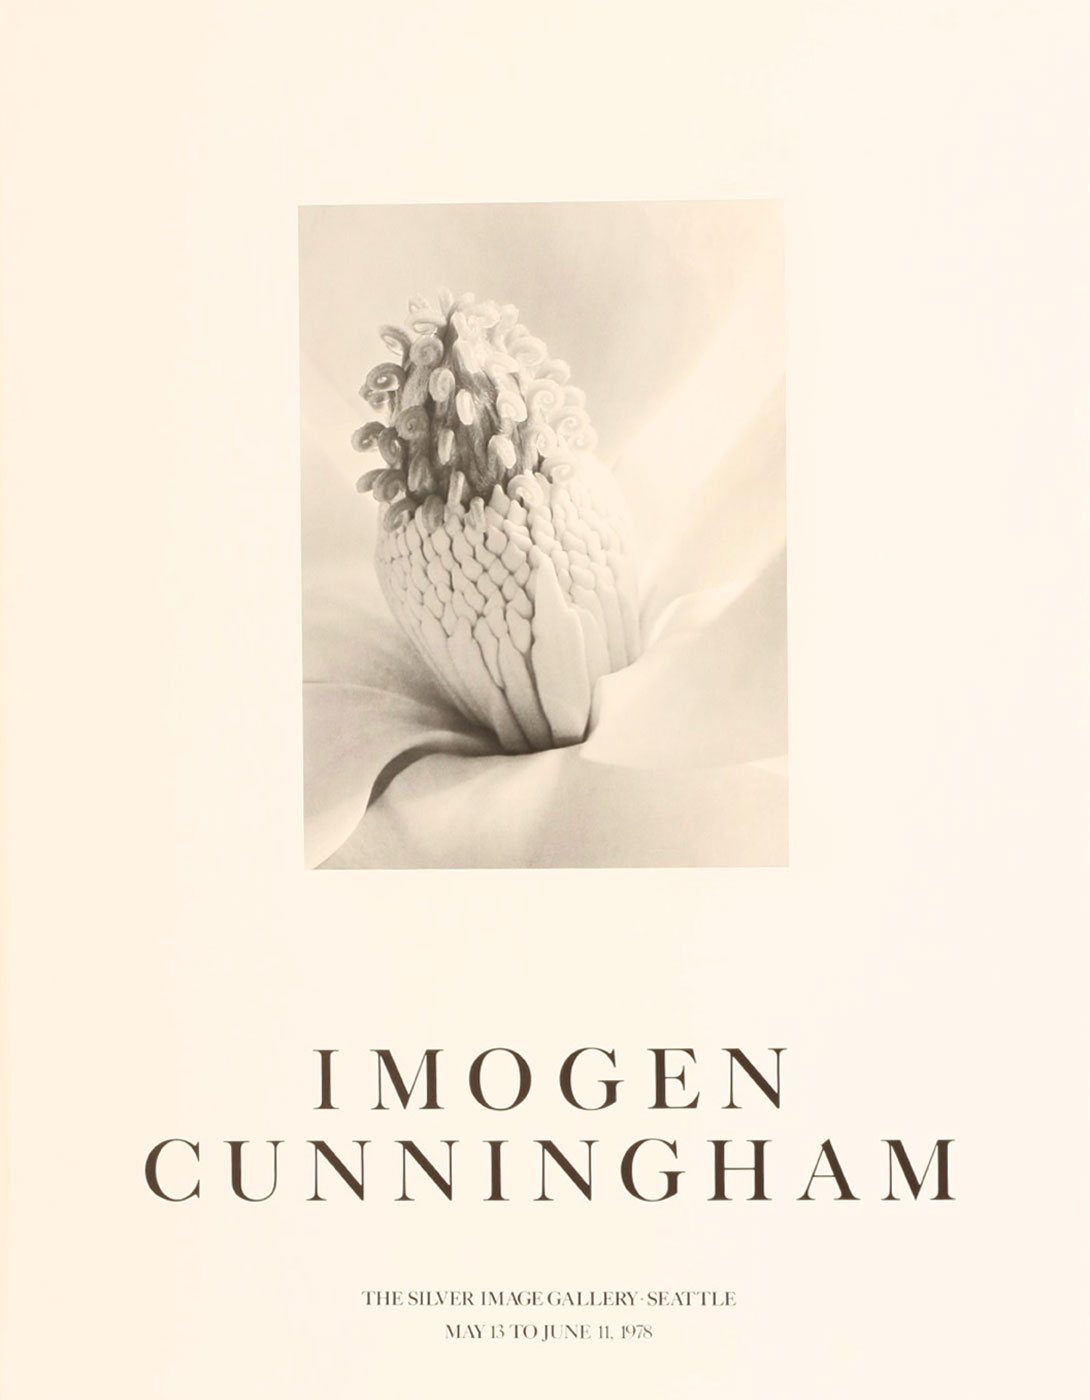 Imogen Cunningham: Silver Image Gallery Exhibition Poster (Magnolia Blossom - Tower of Jewels, 1925)